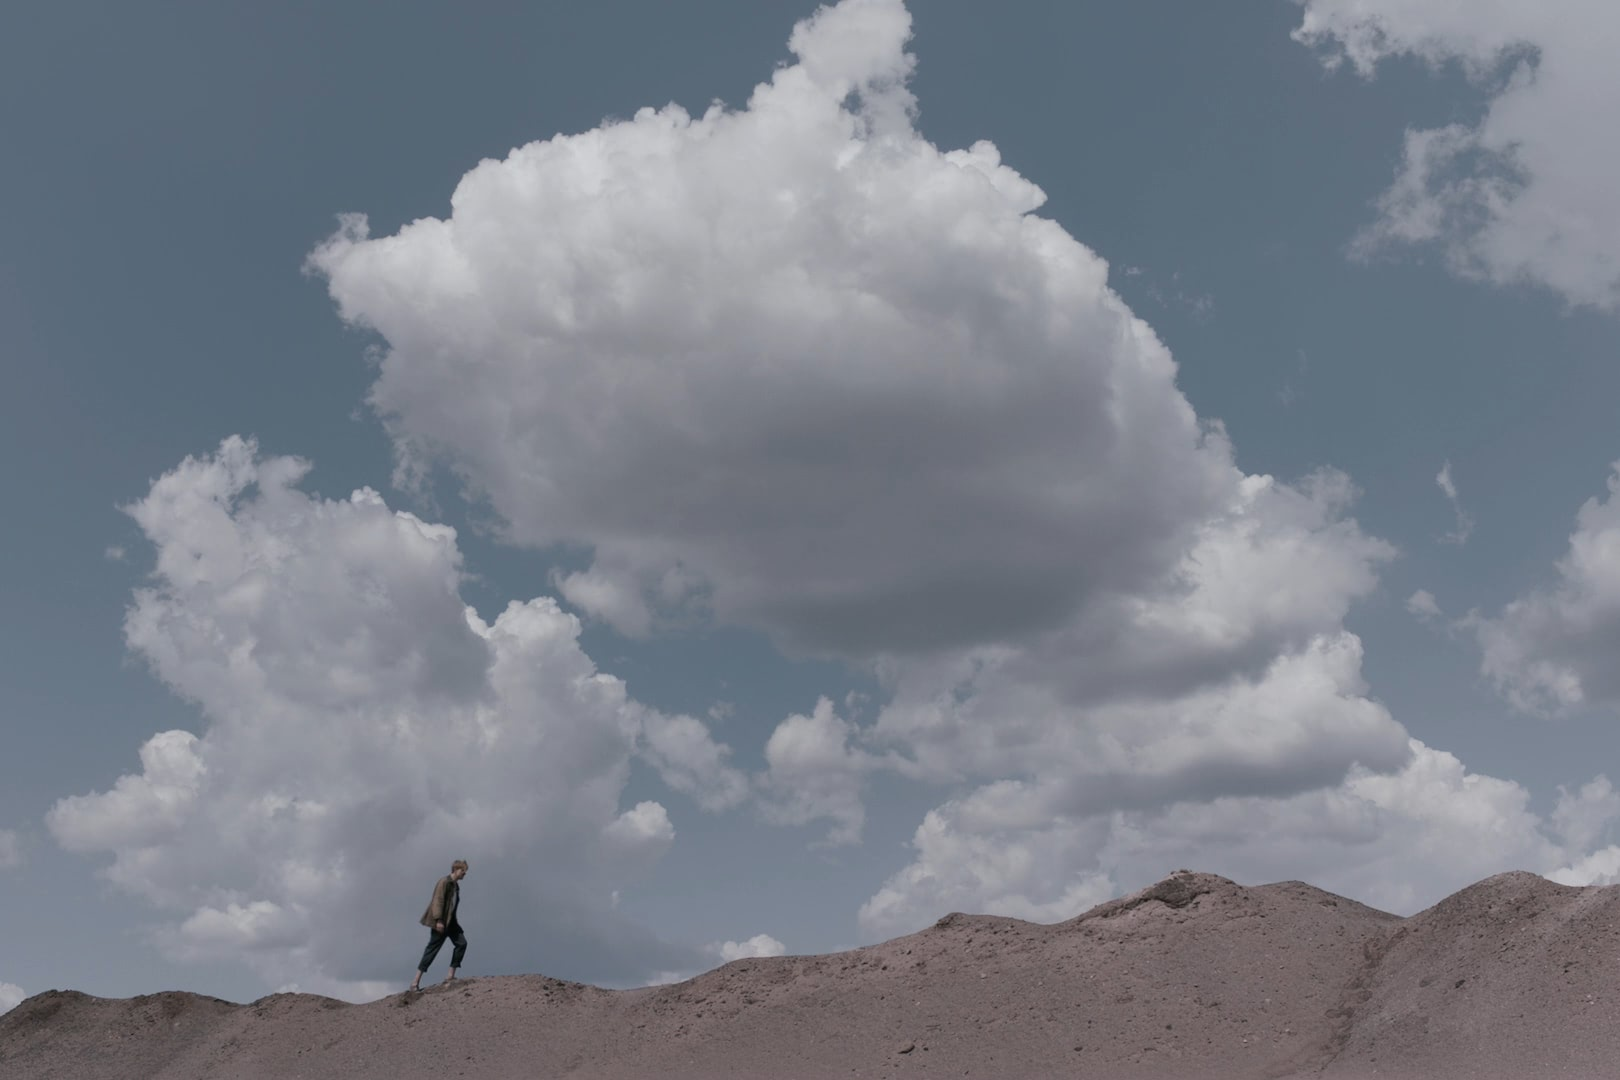 Man walking on a sand dune against the horizon beneath giant white clouds.